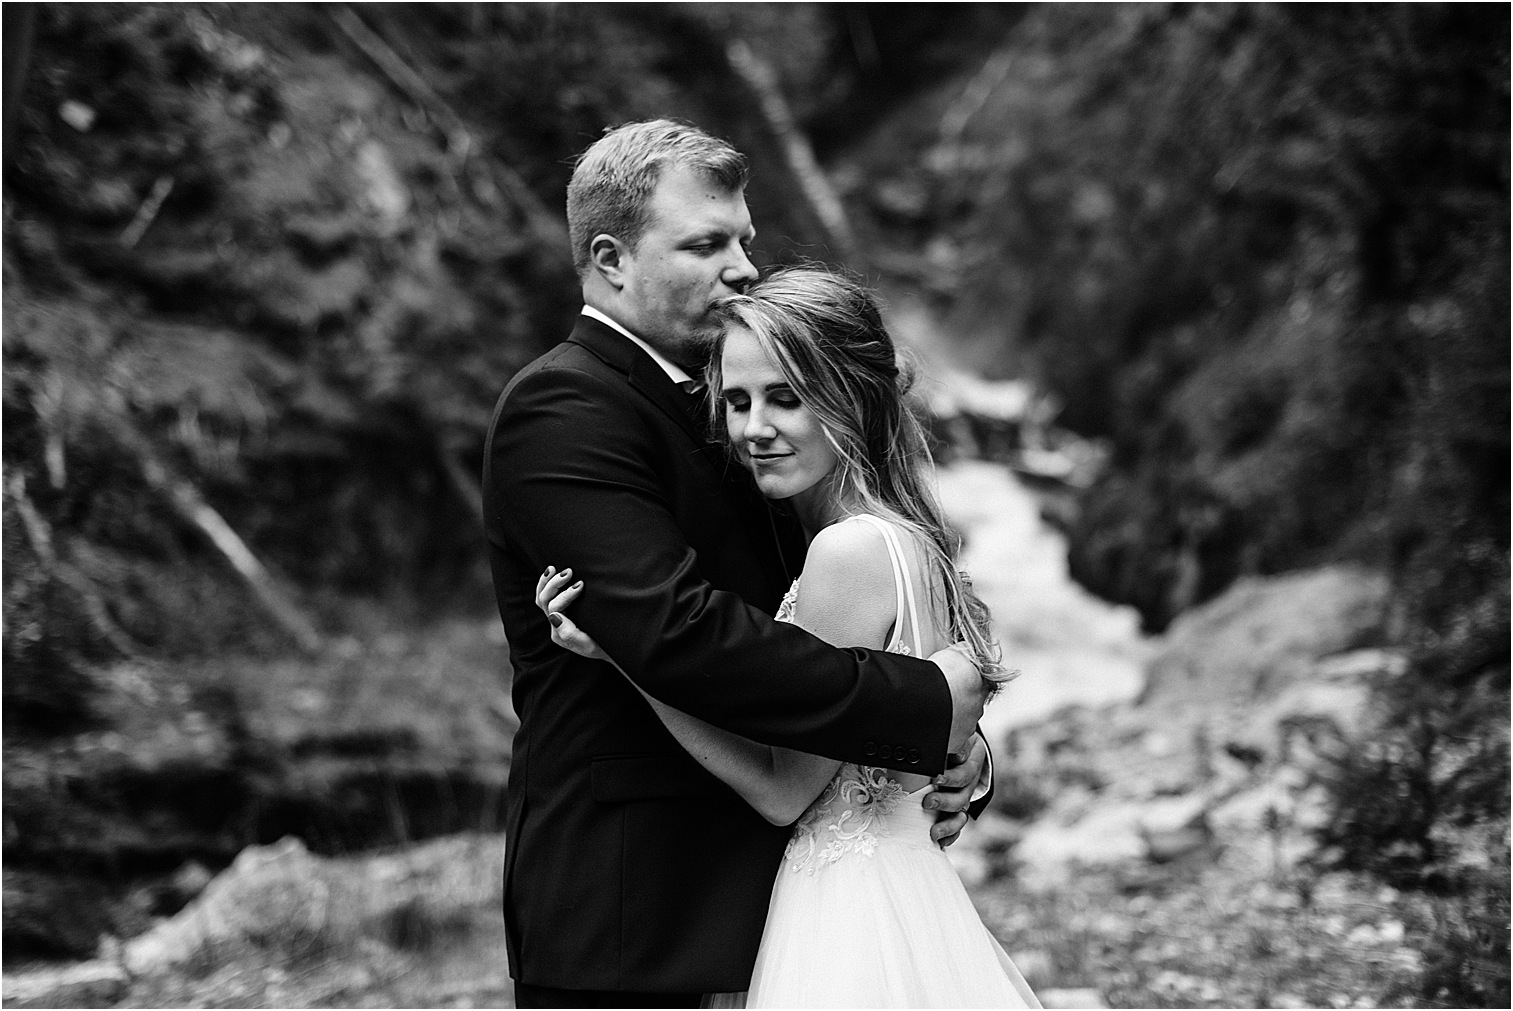 Hope & Steven share a quiet moment at a roadside waterfall during their Adventure Wedding in the North Cascades. Image by Forthright Photo, Seattle Wedding & Elopement Photographers